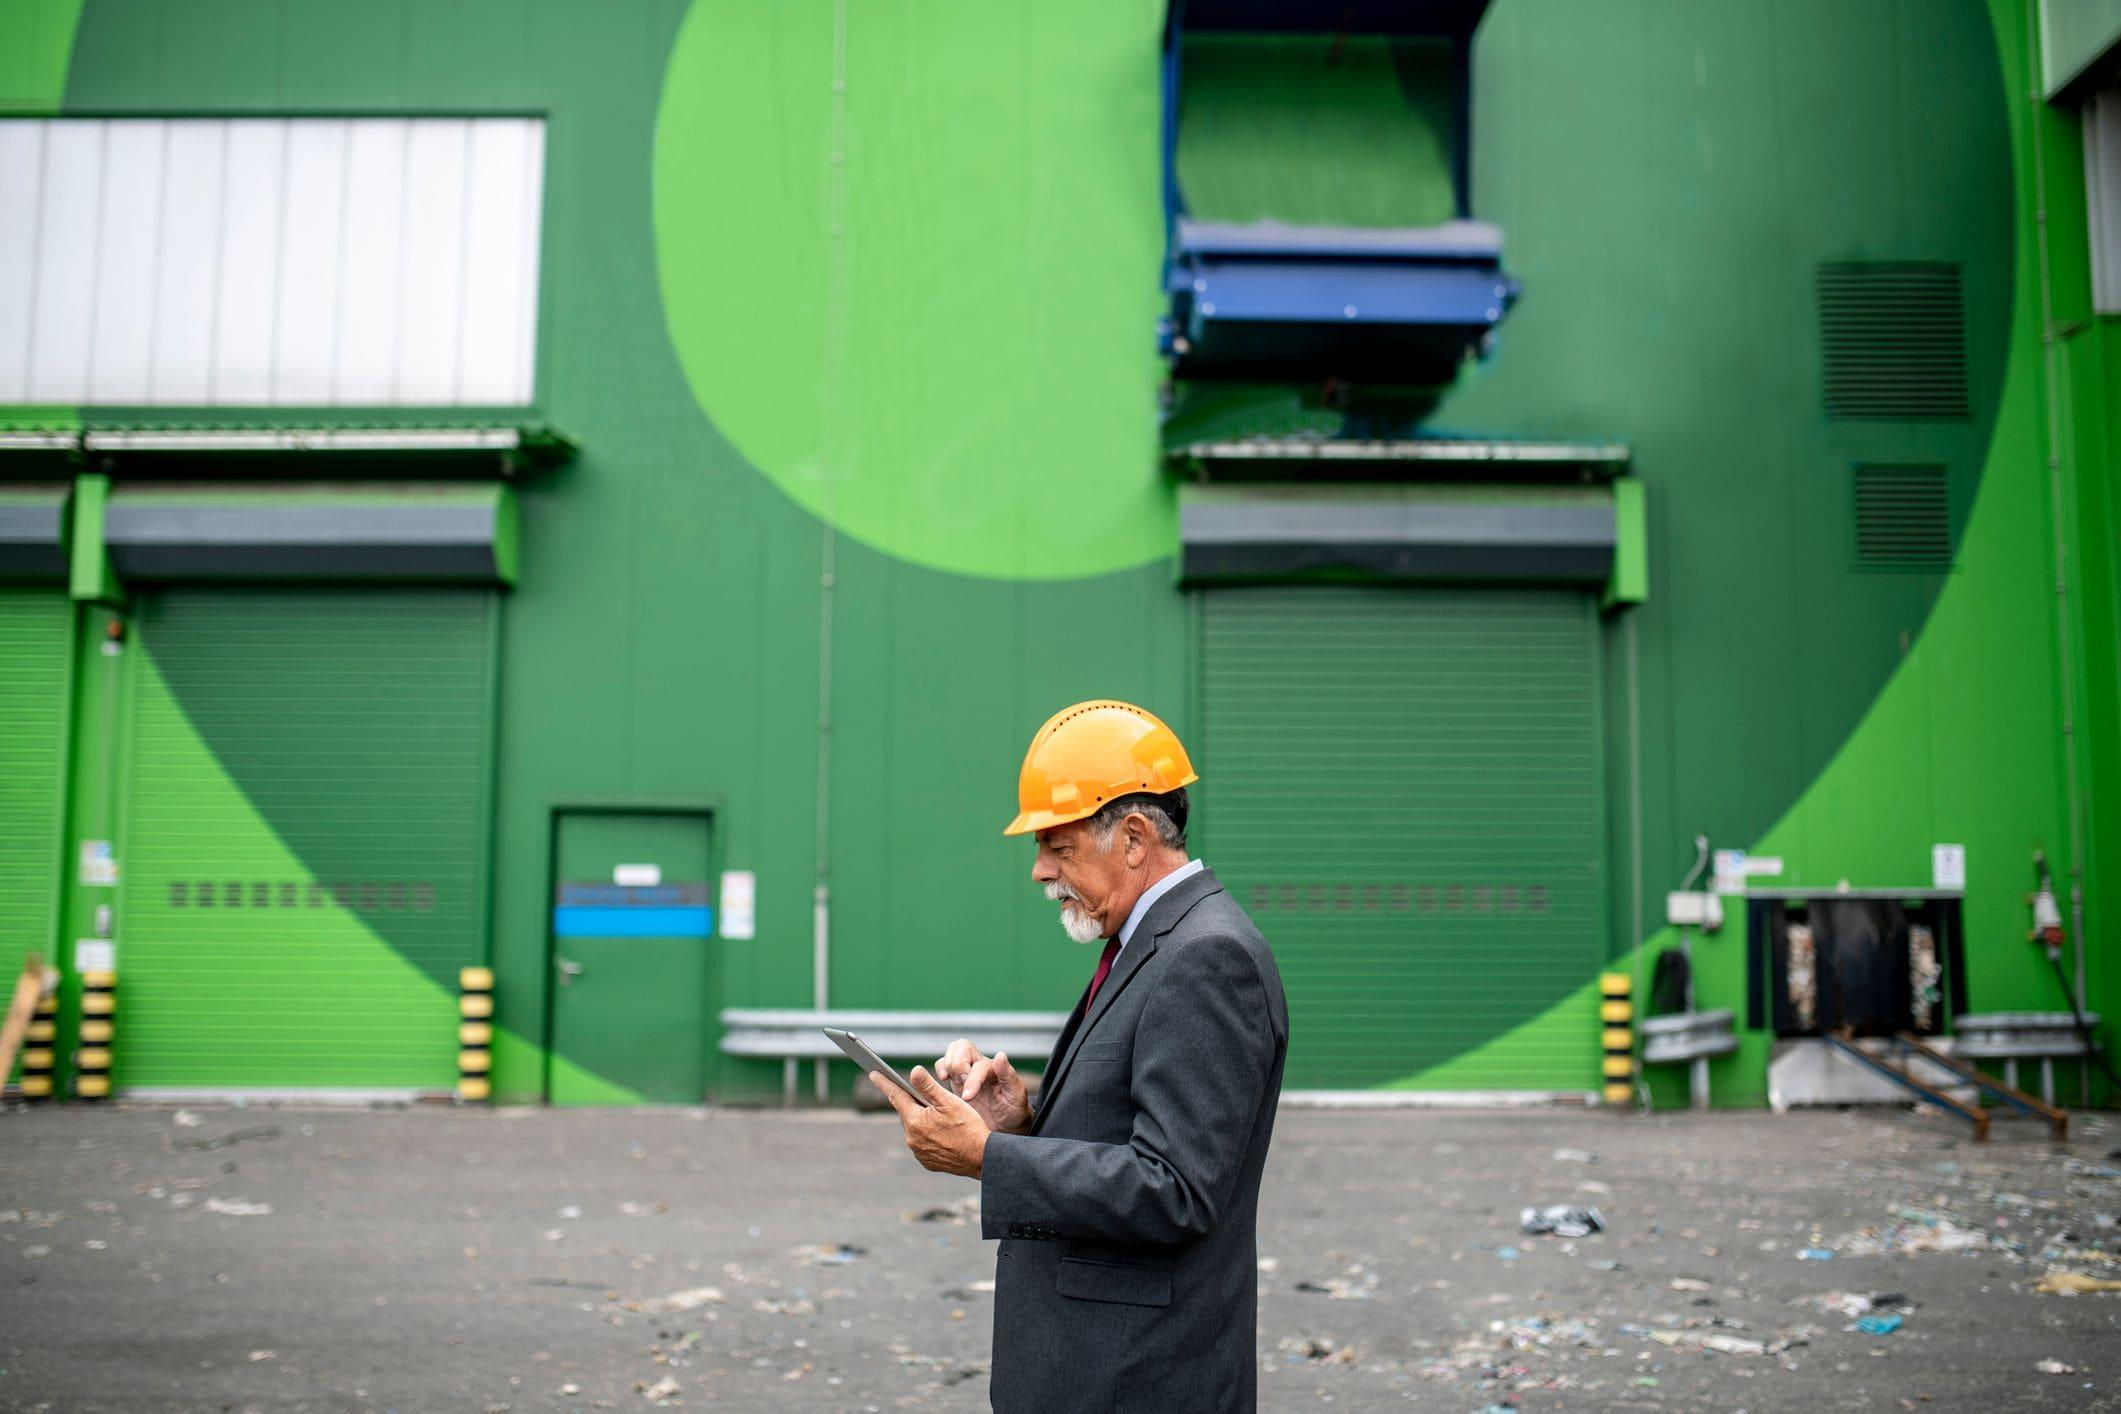 site manager outside colourful green warehouse with pedestrian doors